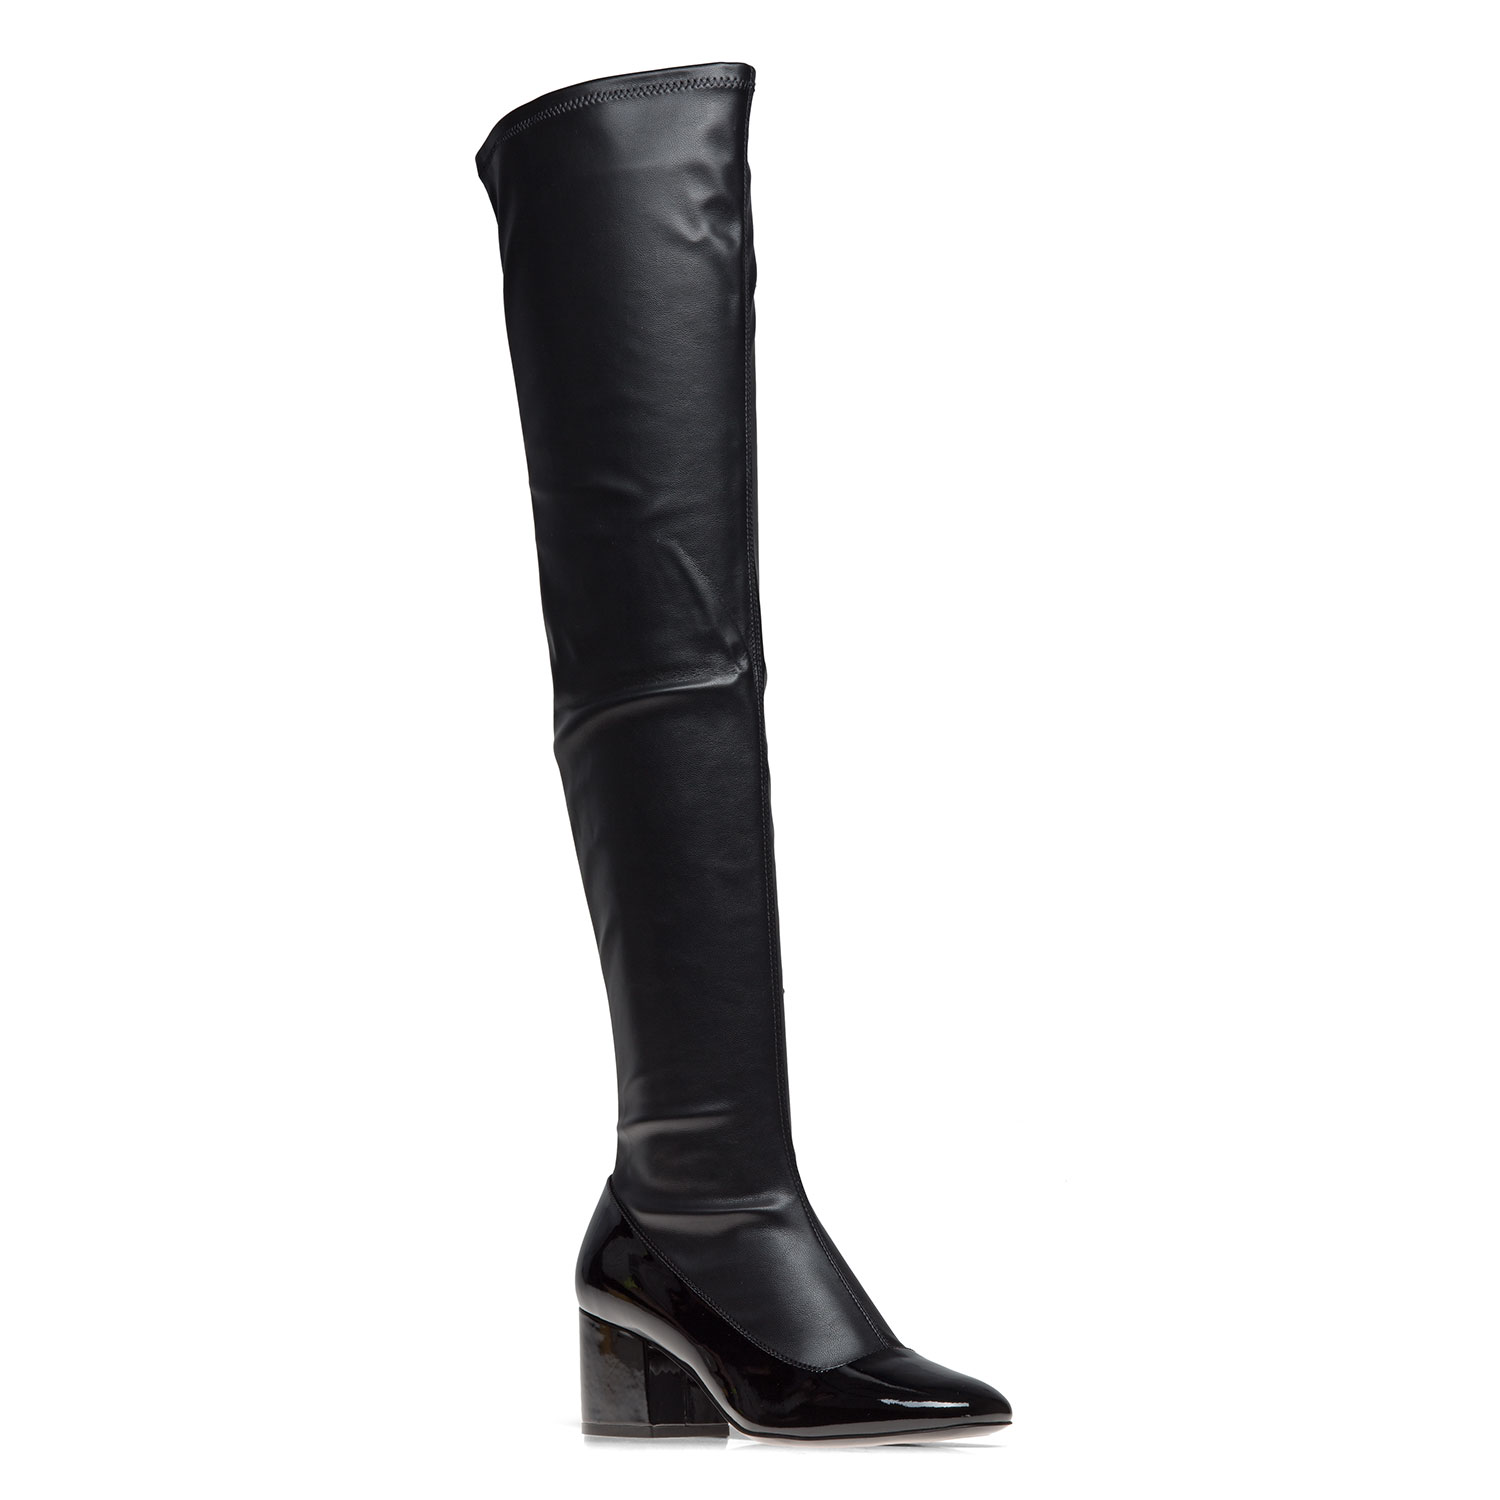 Women's high boots PAZOLINI FL-DAL3-1